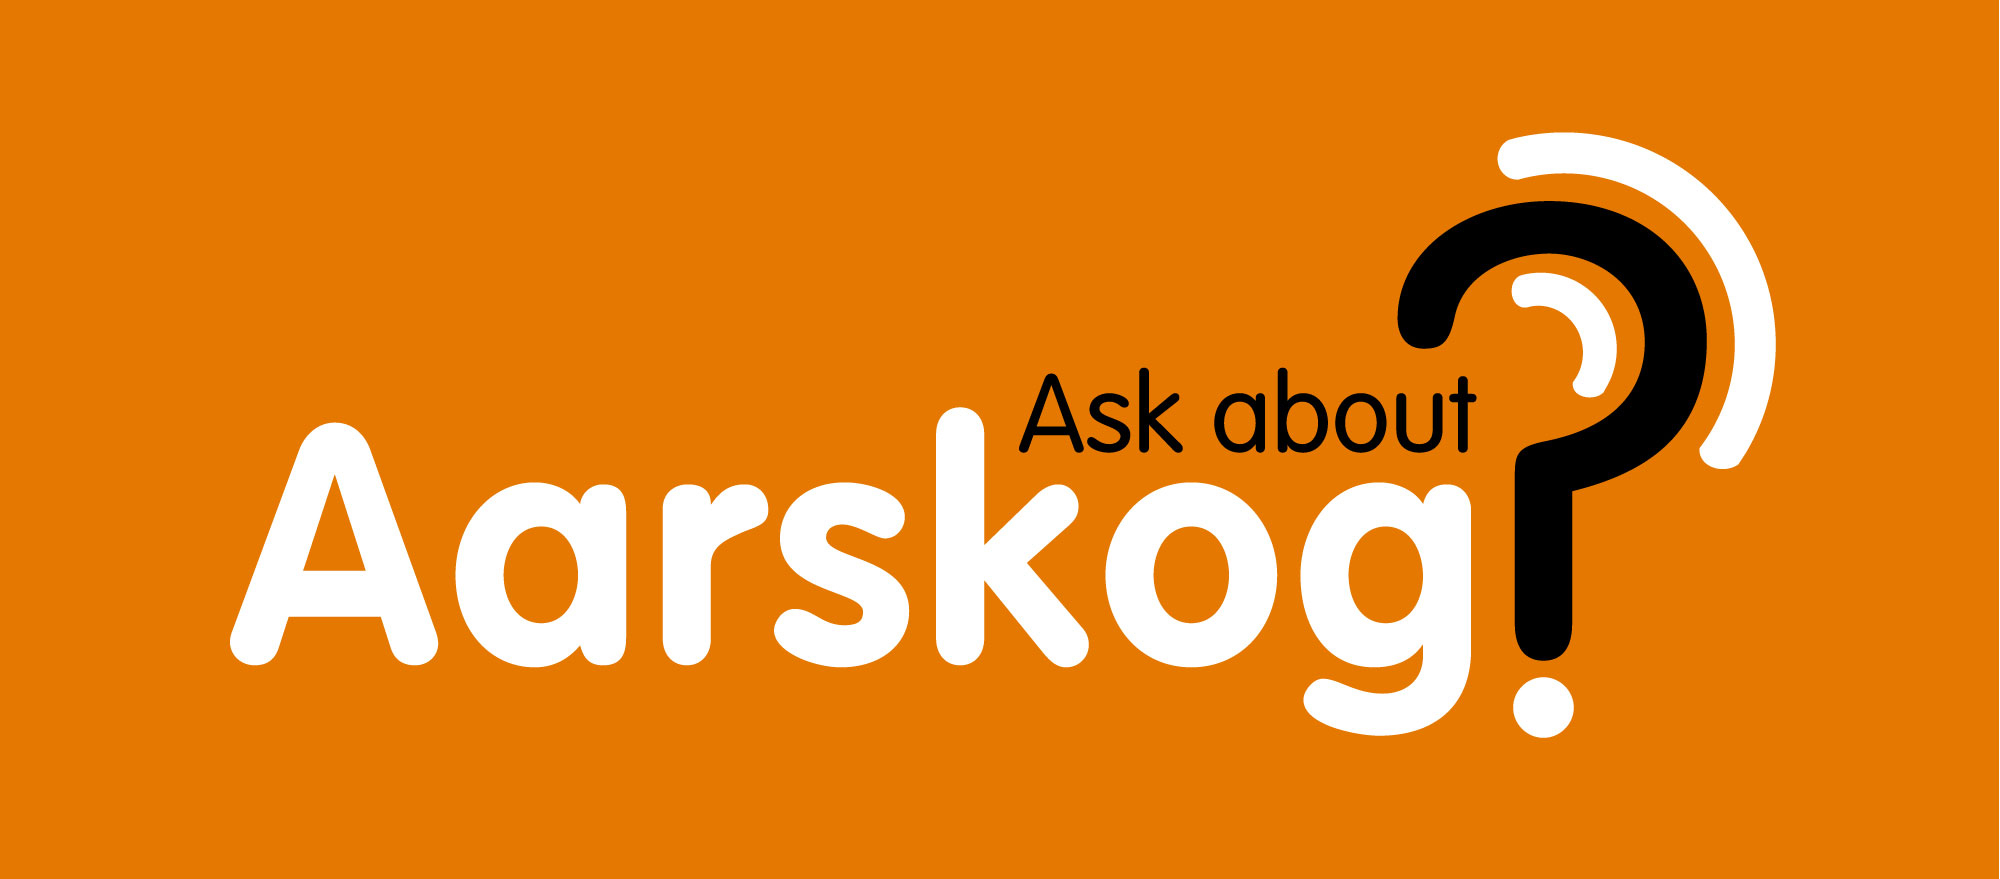 International Aarskog Awareness week 29th September - 4th October 2020